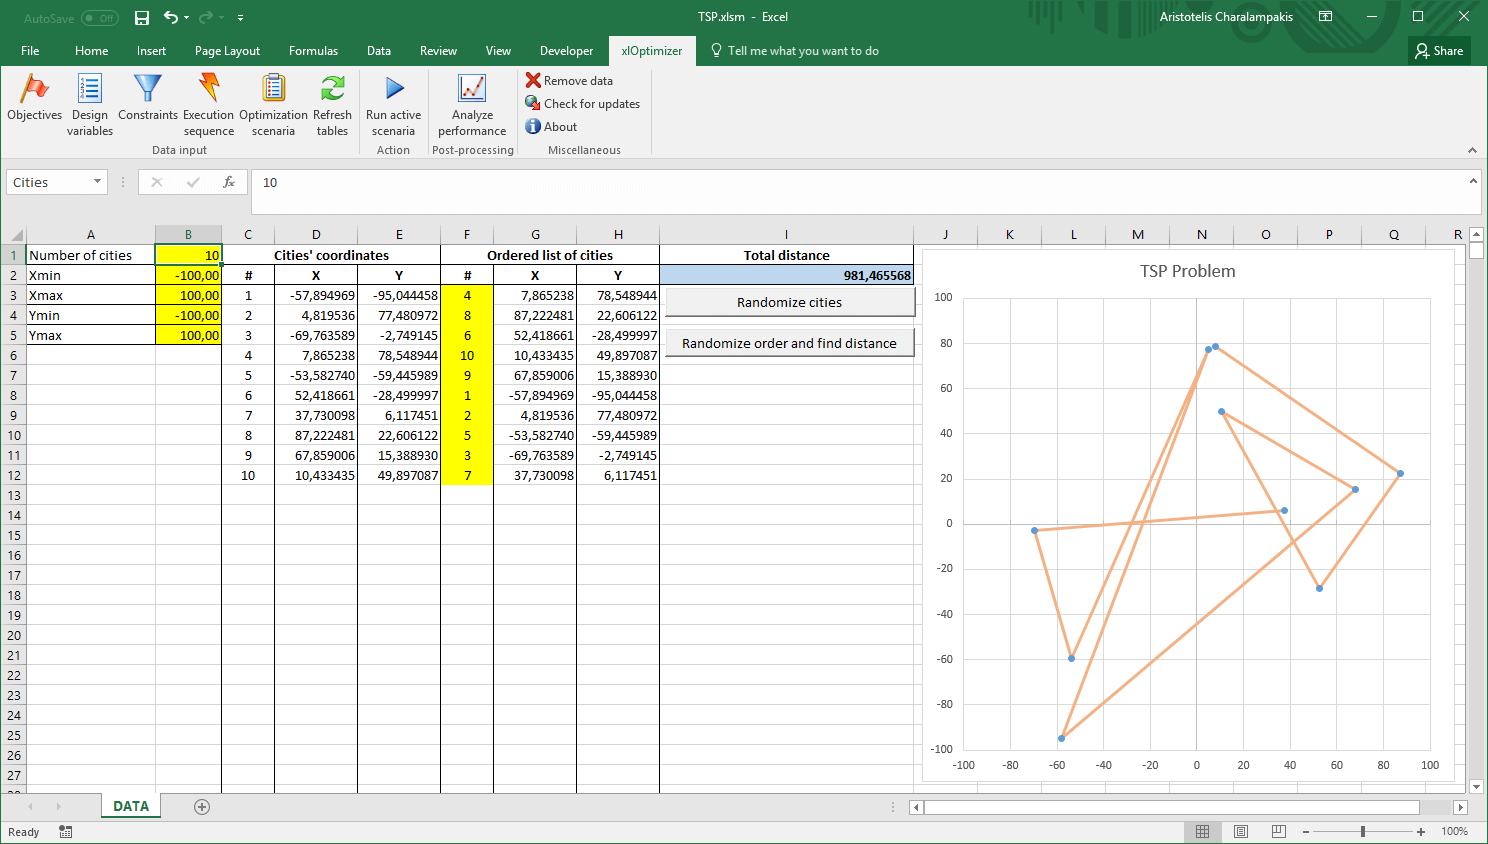 Initial Microsoft Excel window with TSP